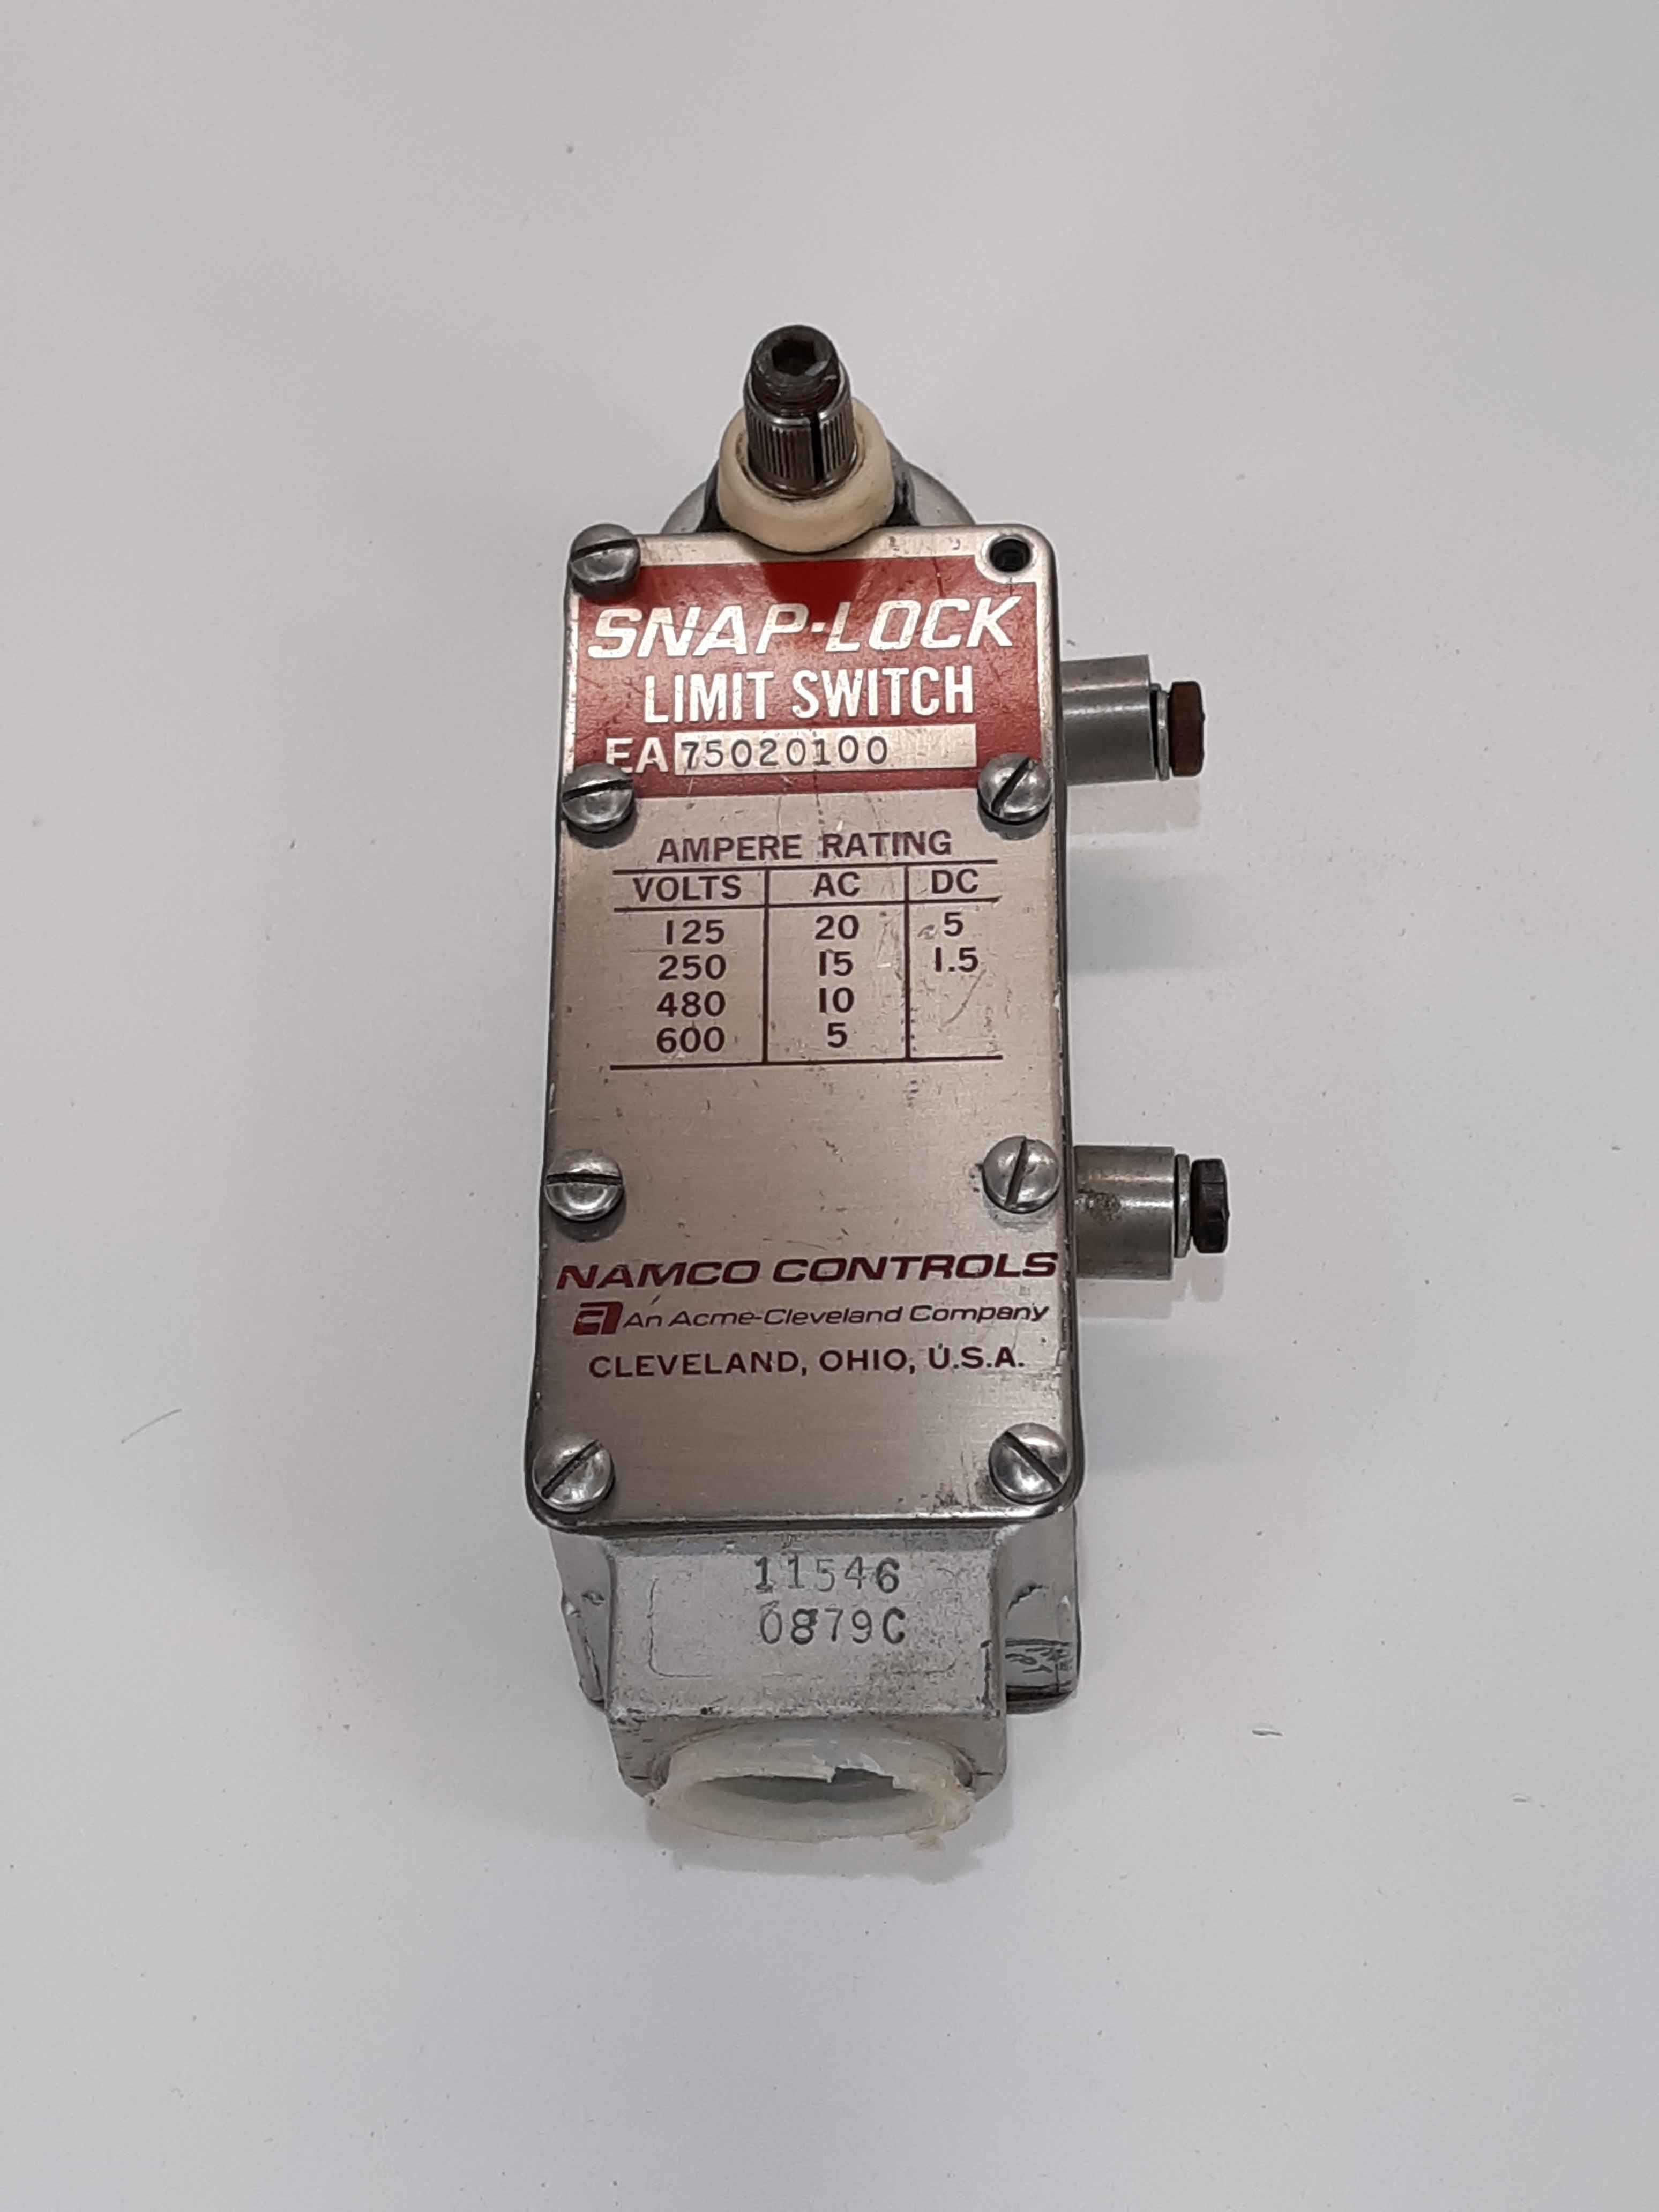 Namco EA75020100 Snap-Lock Limit Switch